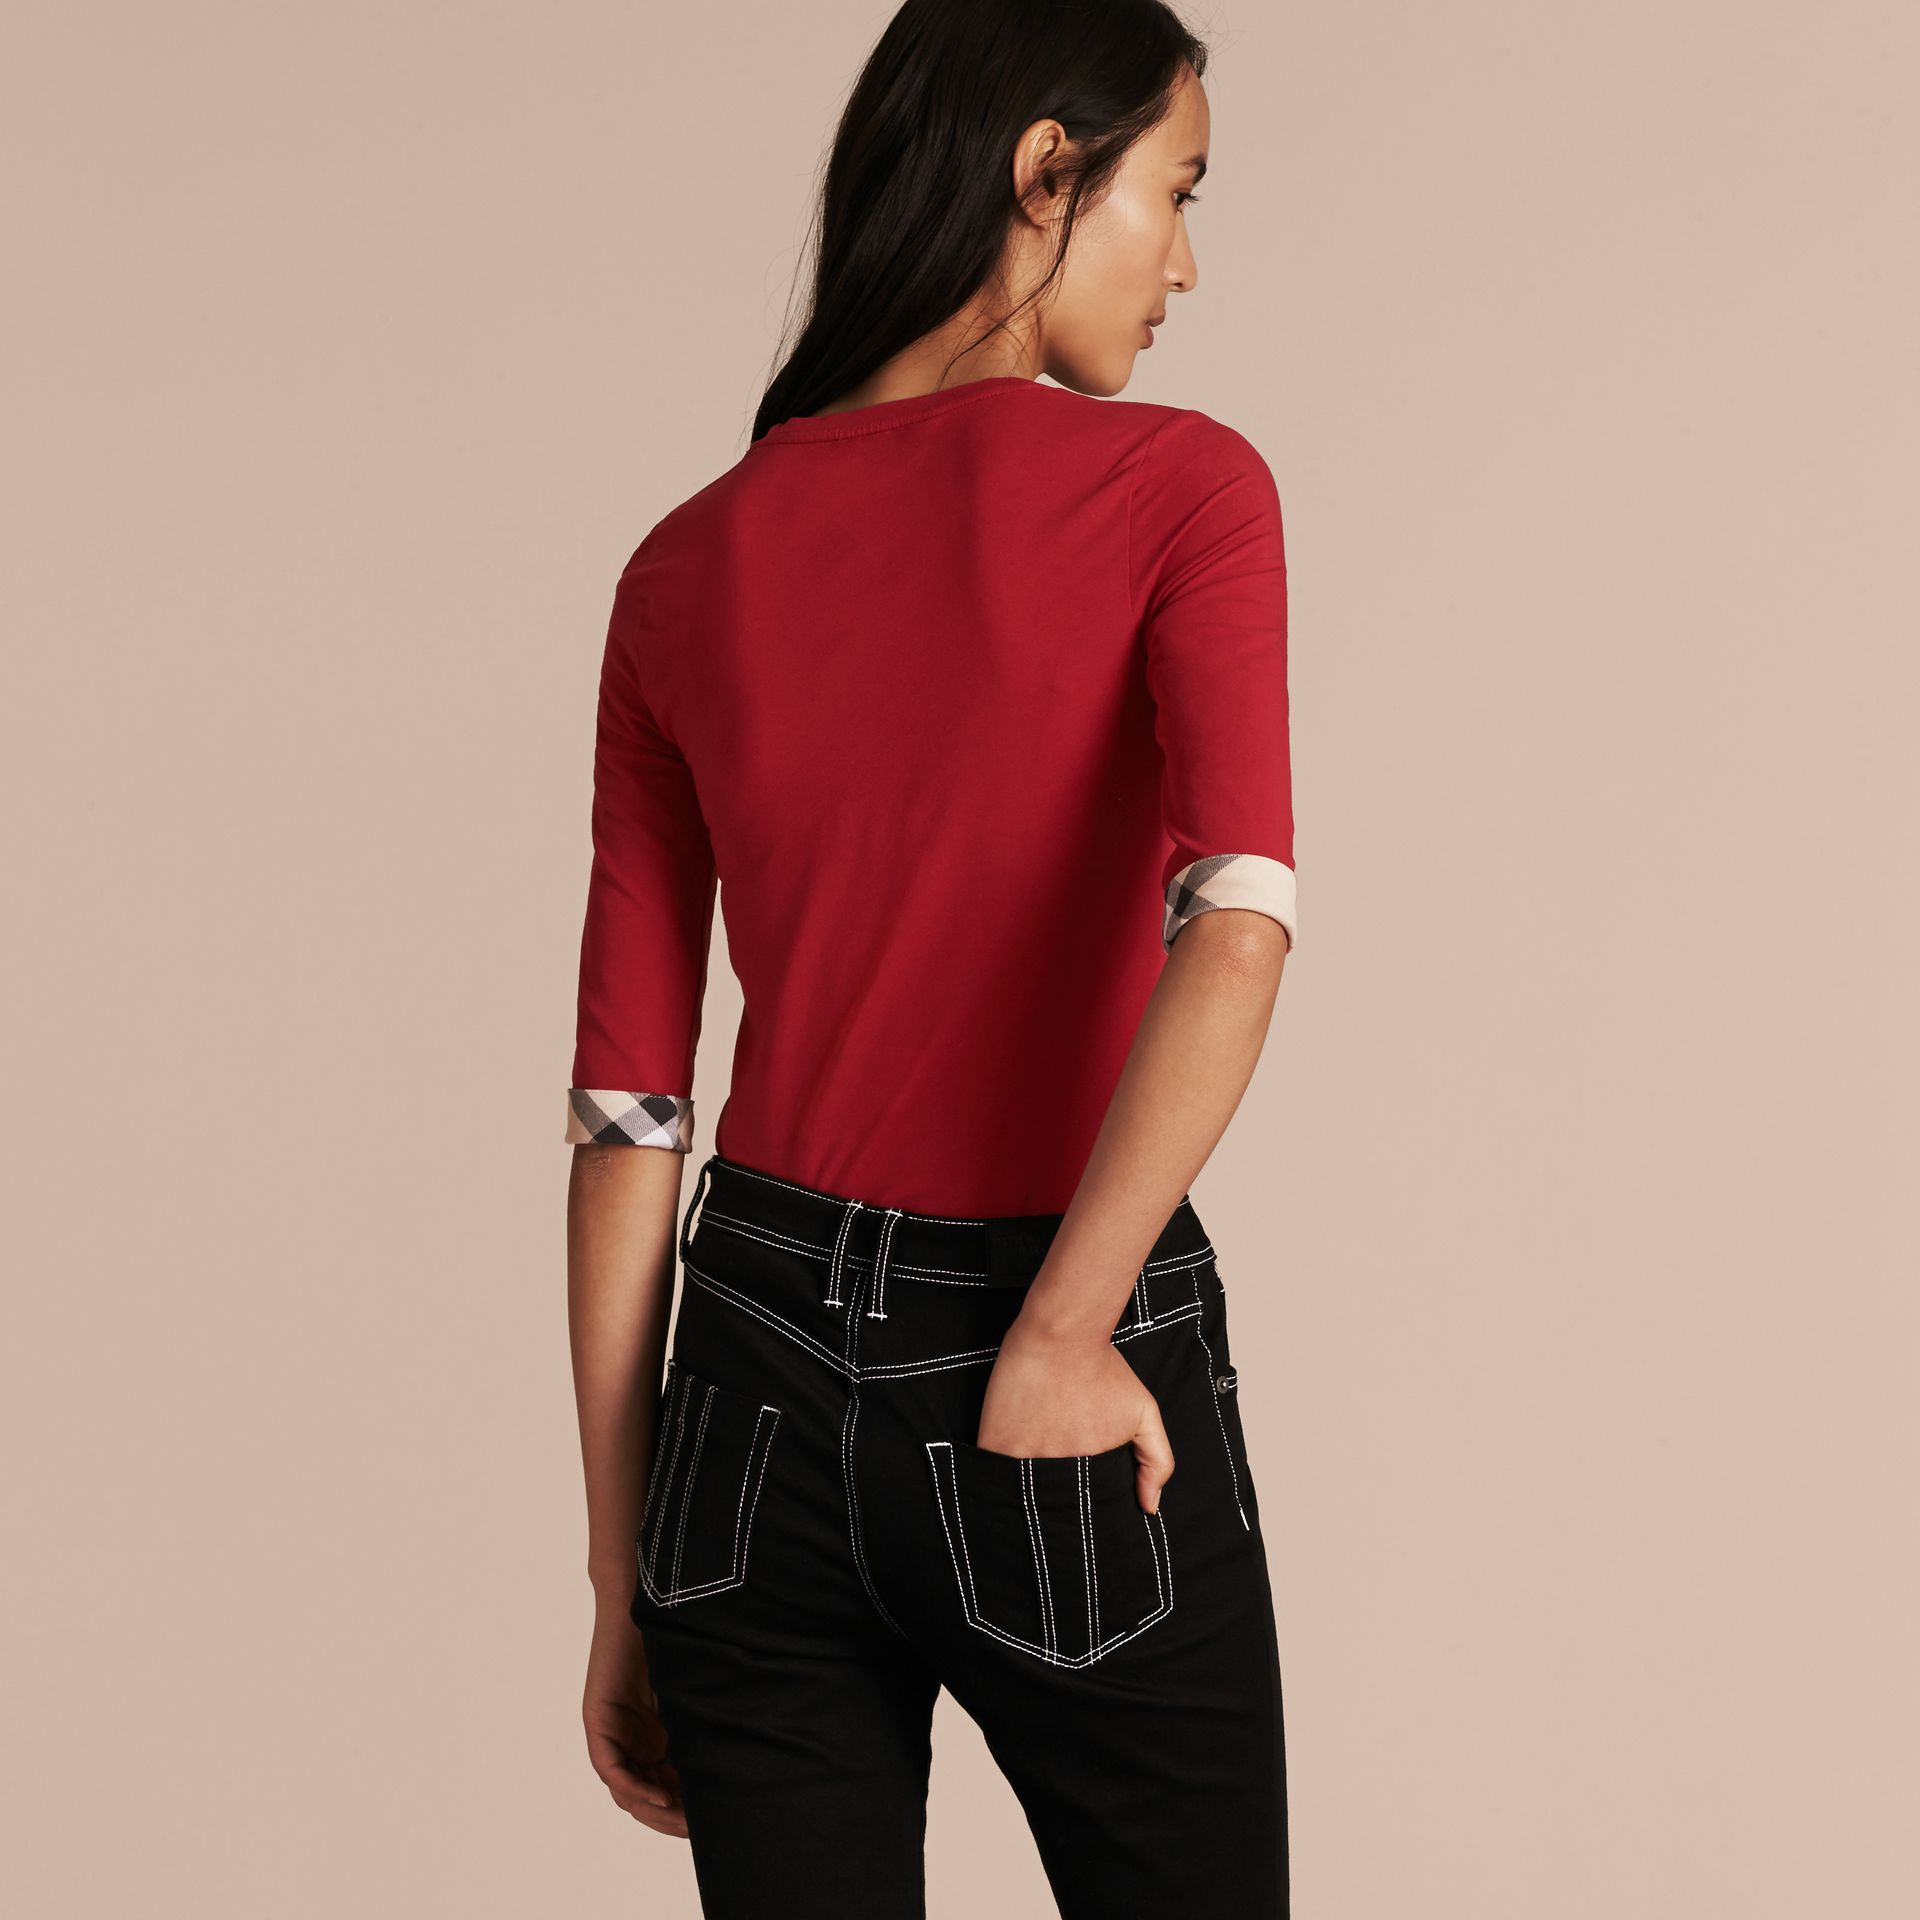 Lacquer red Check Cuff Stretch-Cotton Top Lacquer Red - gallery image 3